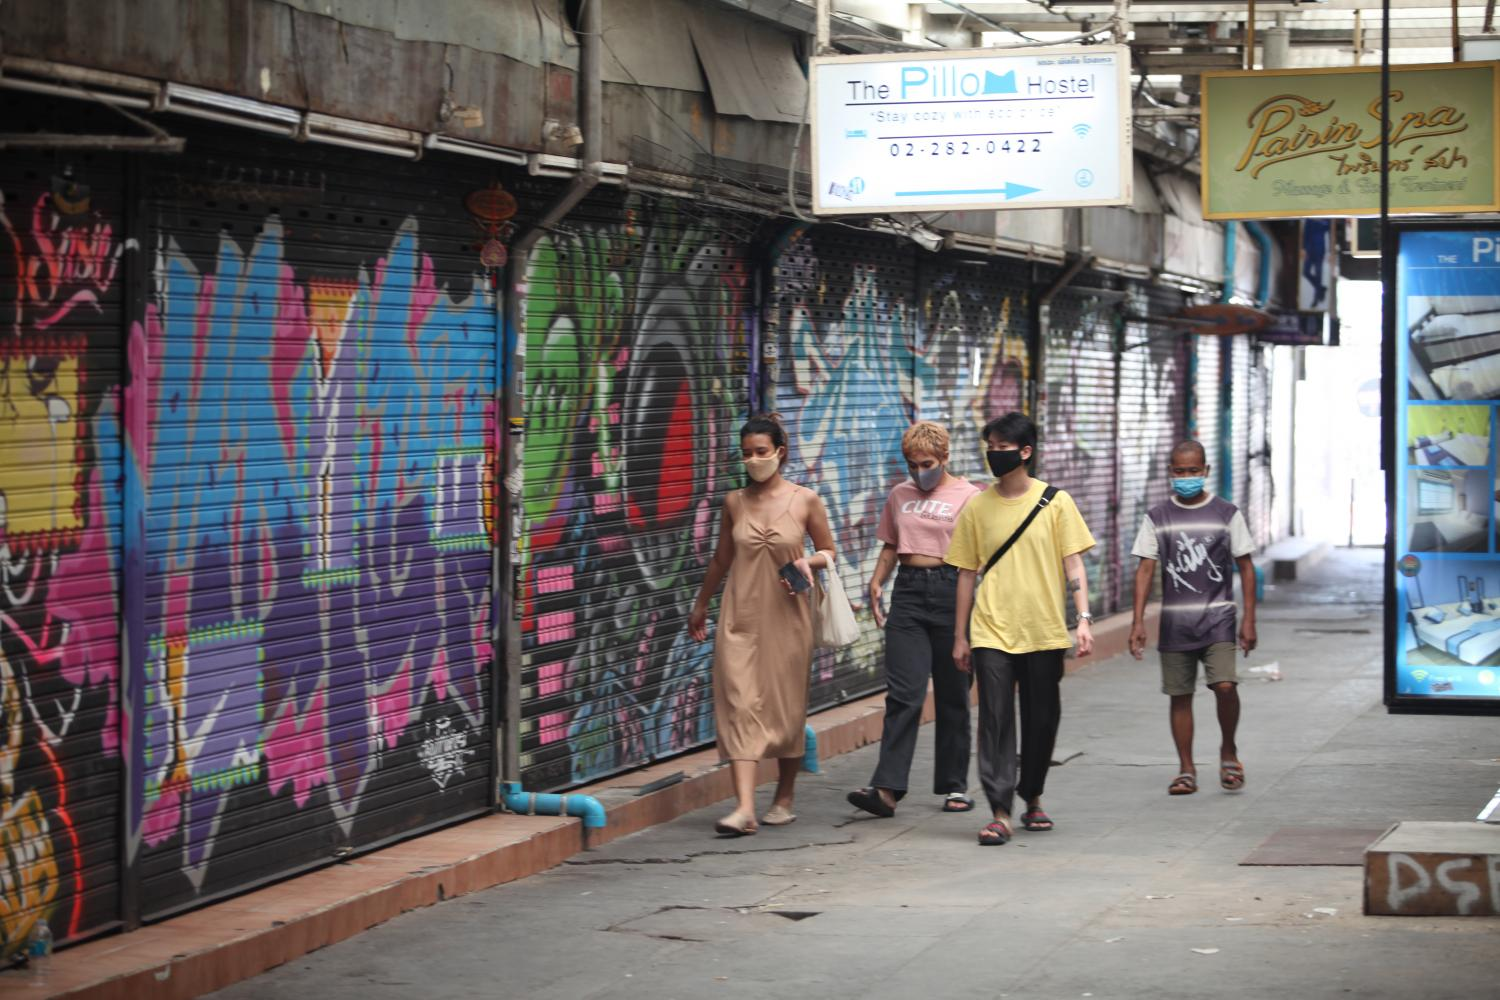 Khao San Road businesses were forced to close because of the Covid-19 pandemic, which damaged the business environment nationwide.Apichart Jinakul